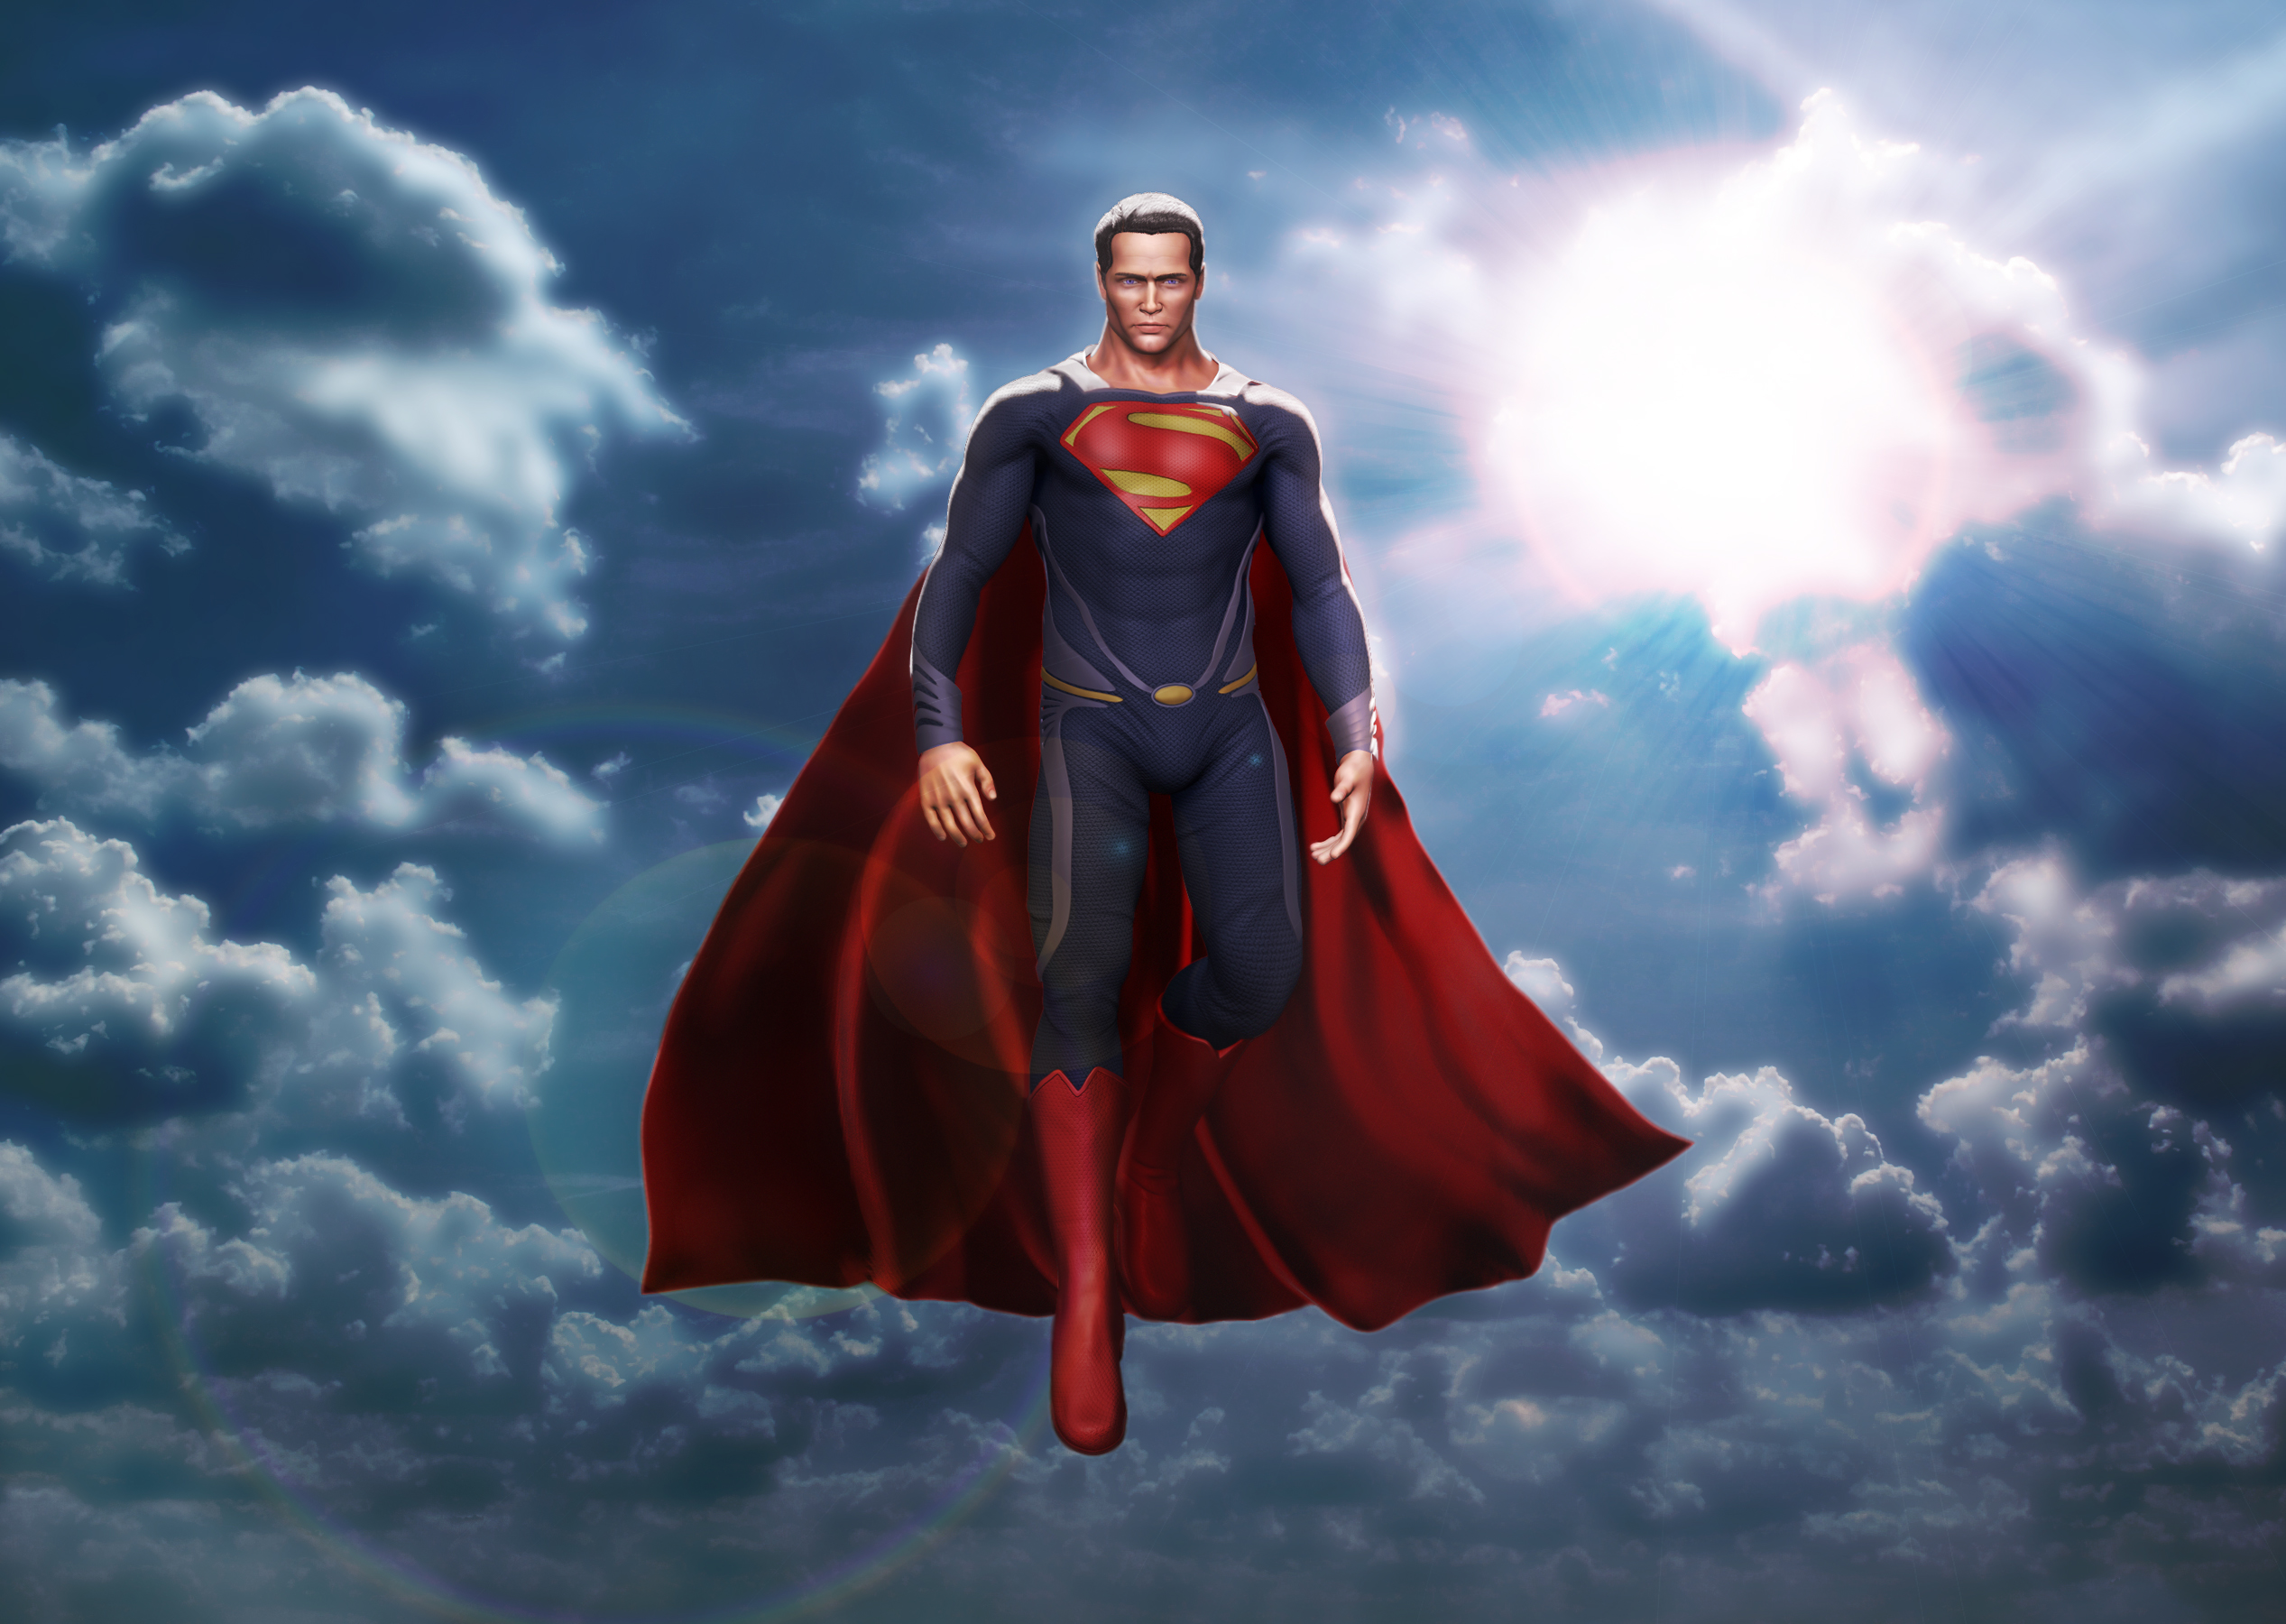 Man Of Steel superman superhero comic comics wallpaper 2534x1800 2534x1800